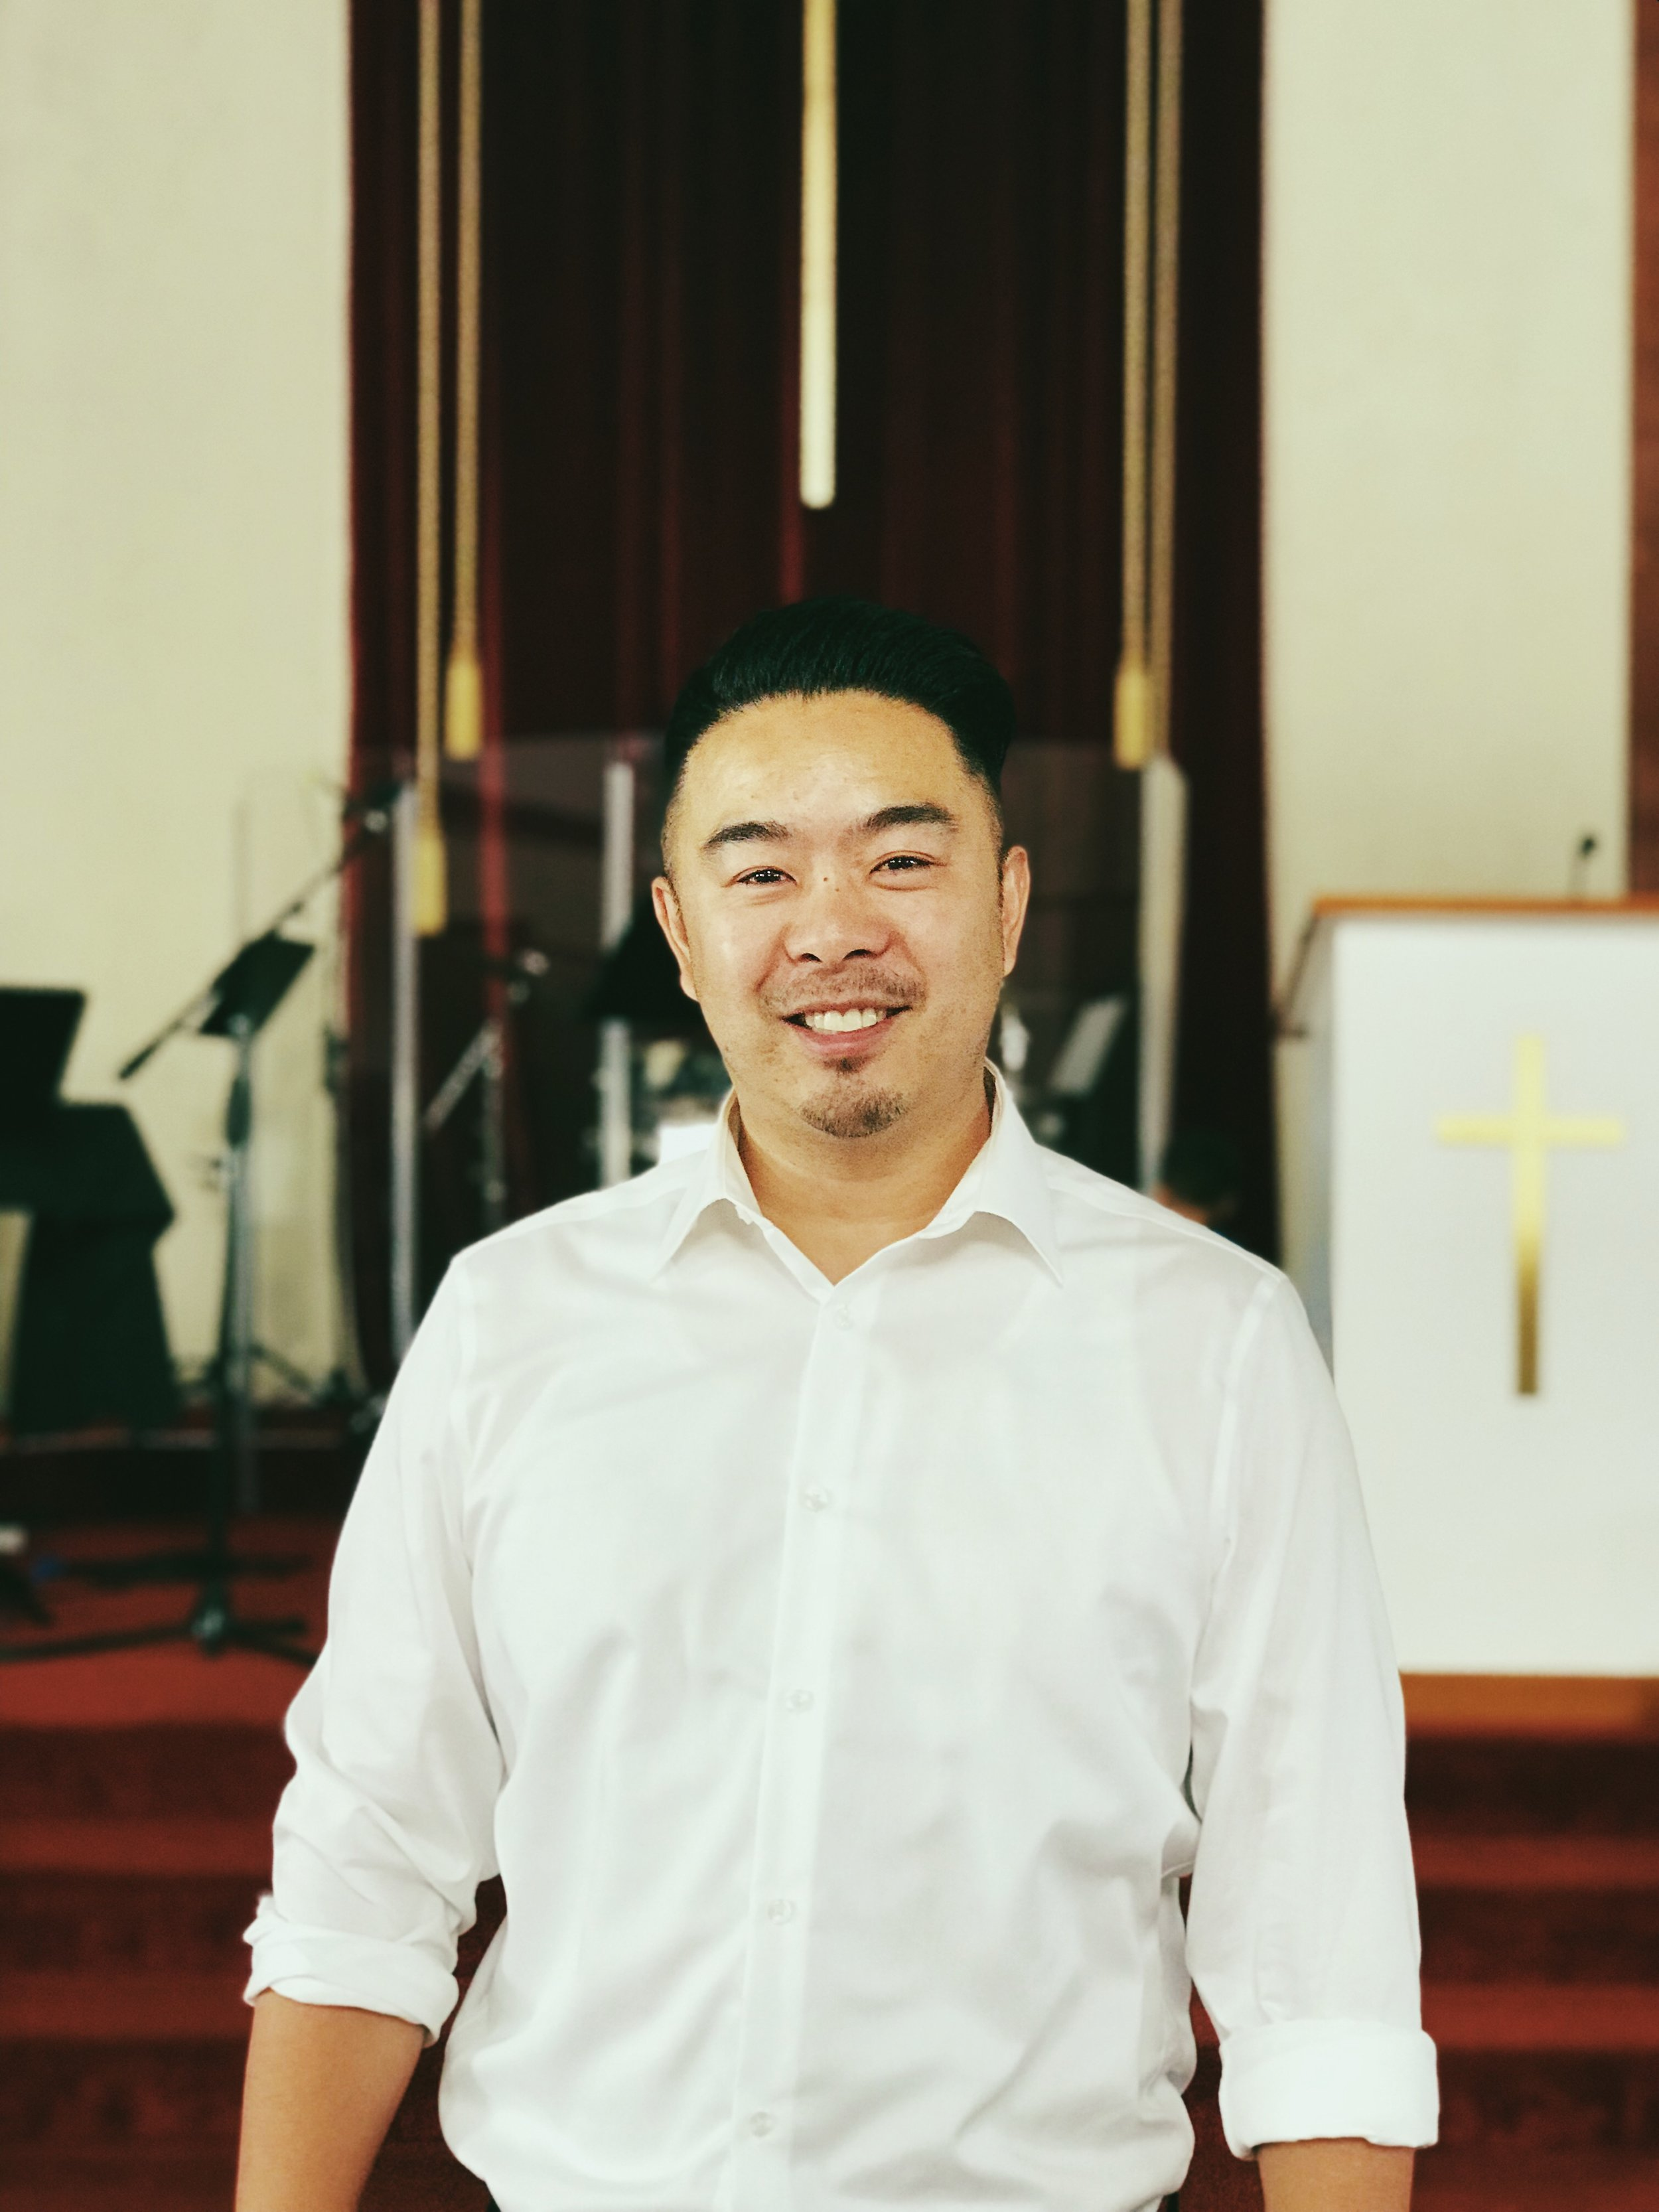 Clifton Jang –Campus Pastor - Clifton was born and raised in San Francisco and grew up a hardcore, Giants, 49ers, and Warriors fan. He gave his life to Christ in High School and has been on an incredible journey ever since. Clifton has served in the youth ministry, choir, and as a worship leader for many years. Missions has also played a big role in Clifton's life, as he has been serving with RE:ACTS Ministries, a non-profit missions organization, since 2009. After years of working in the insurance industry, Clifton felt a calling from God to love and serve the people in San Francisco. Clifton was licensed as a pastor in January 2018 by Cornerstone Trinity Baptist Church. Clifton serves as the campus pastor of CTX, a church plant launched by CTBC in April 2018. He is also finishing up his MDiv from Gateway Seminary.